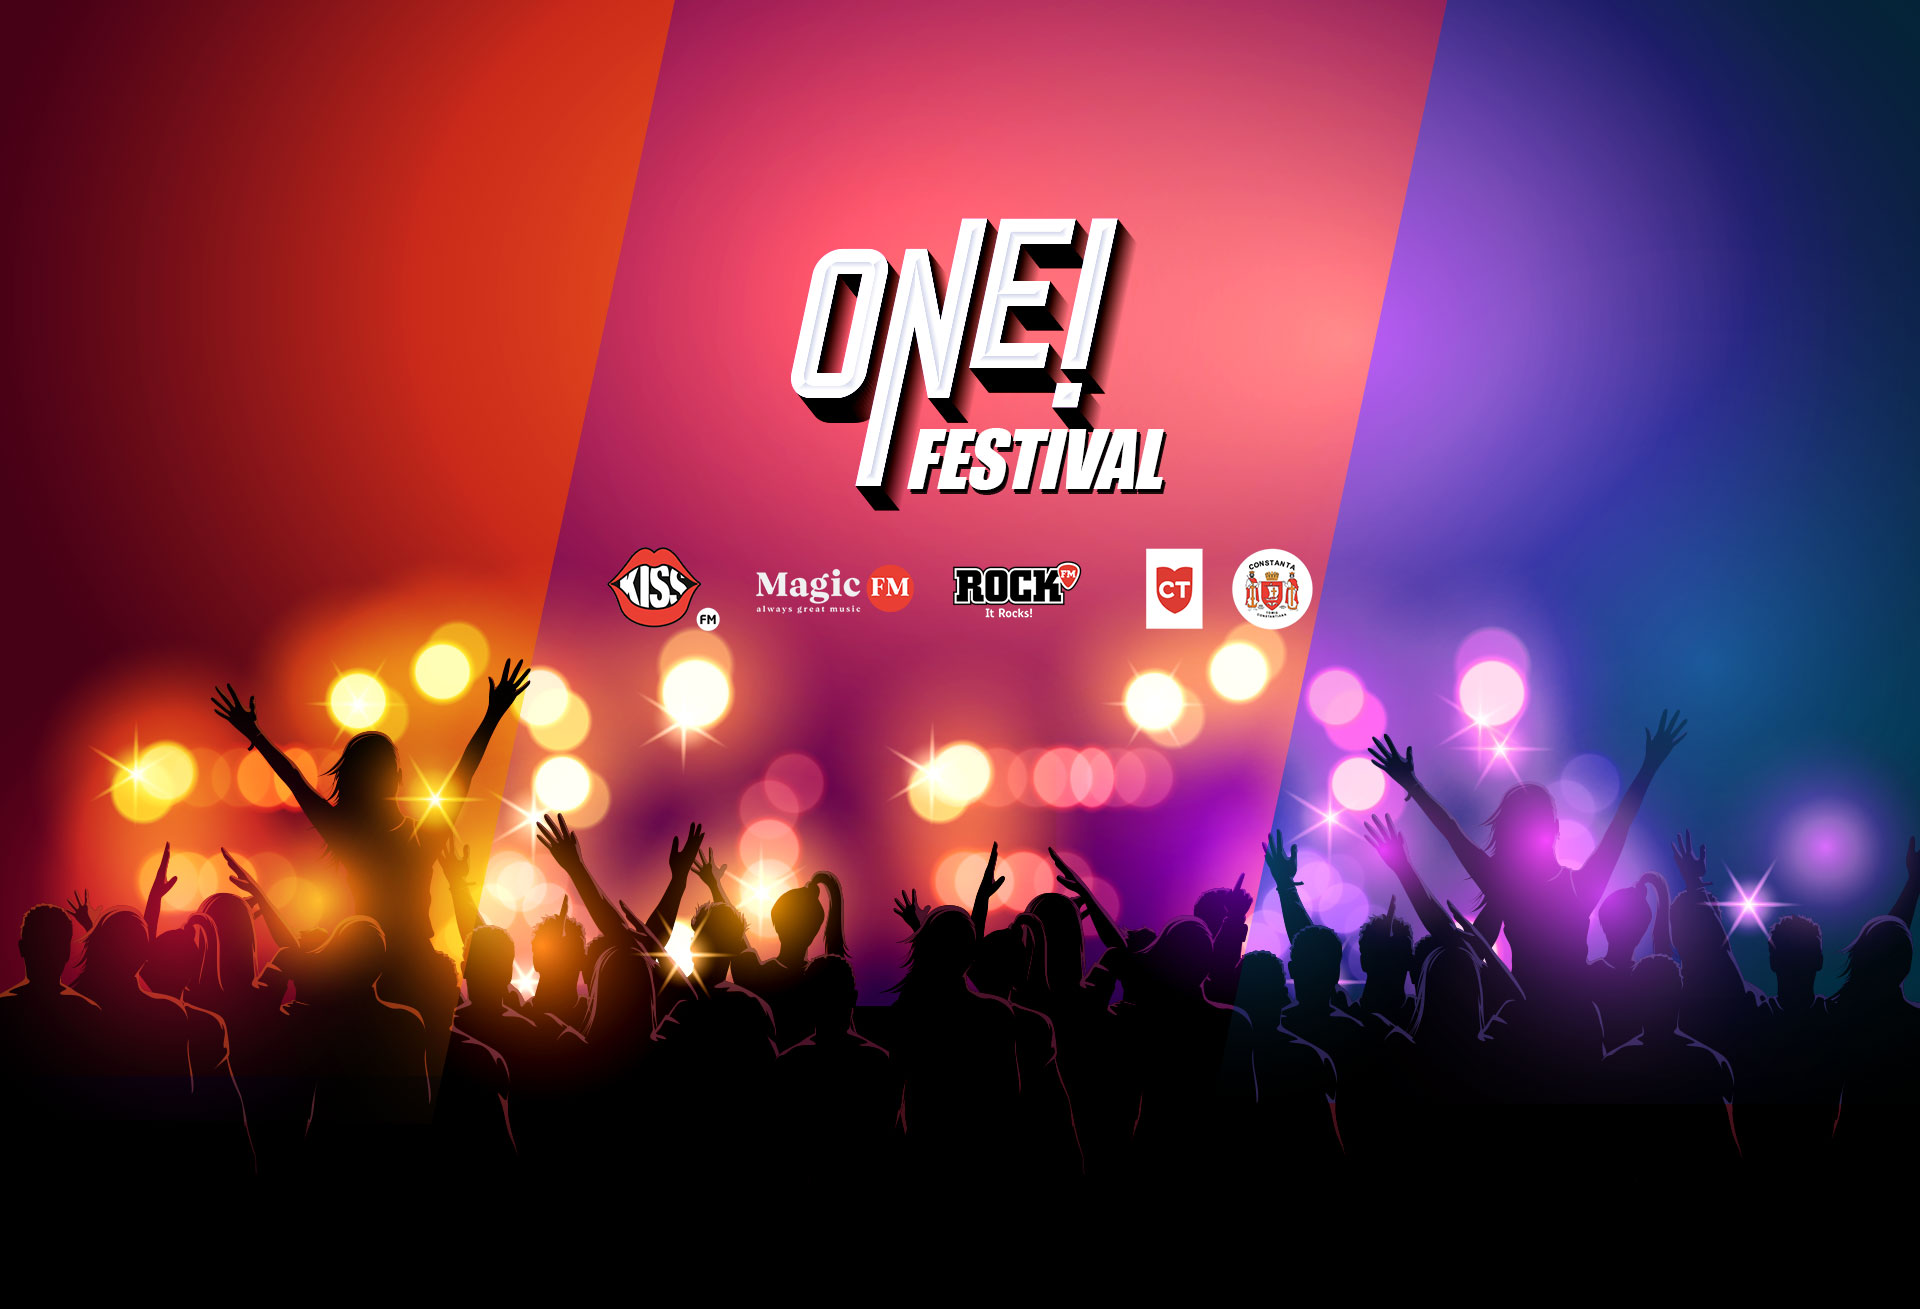 One Festival